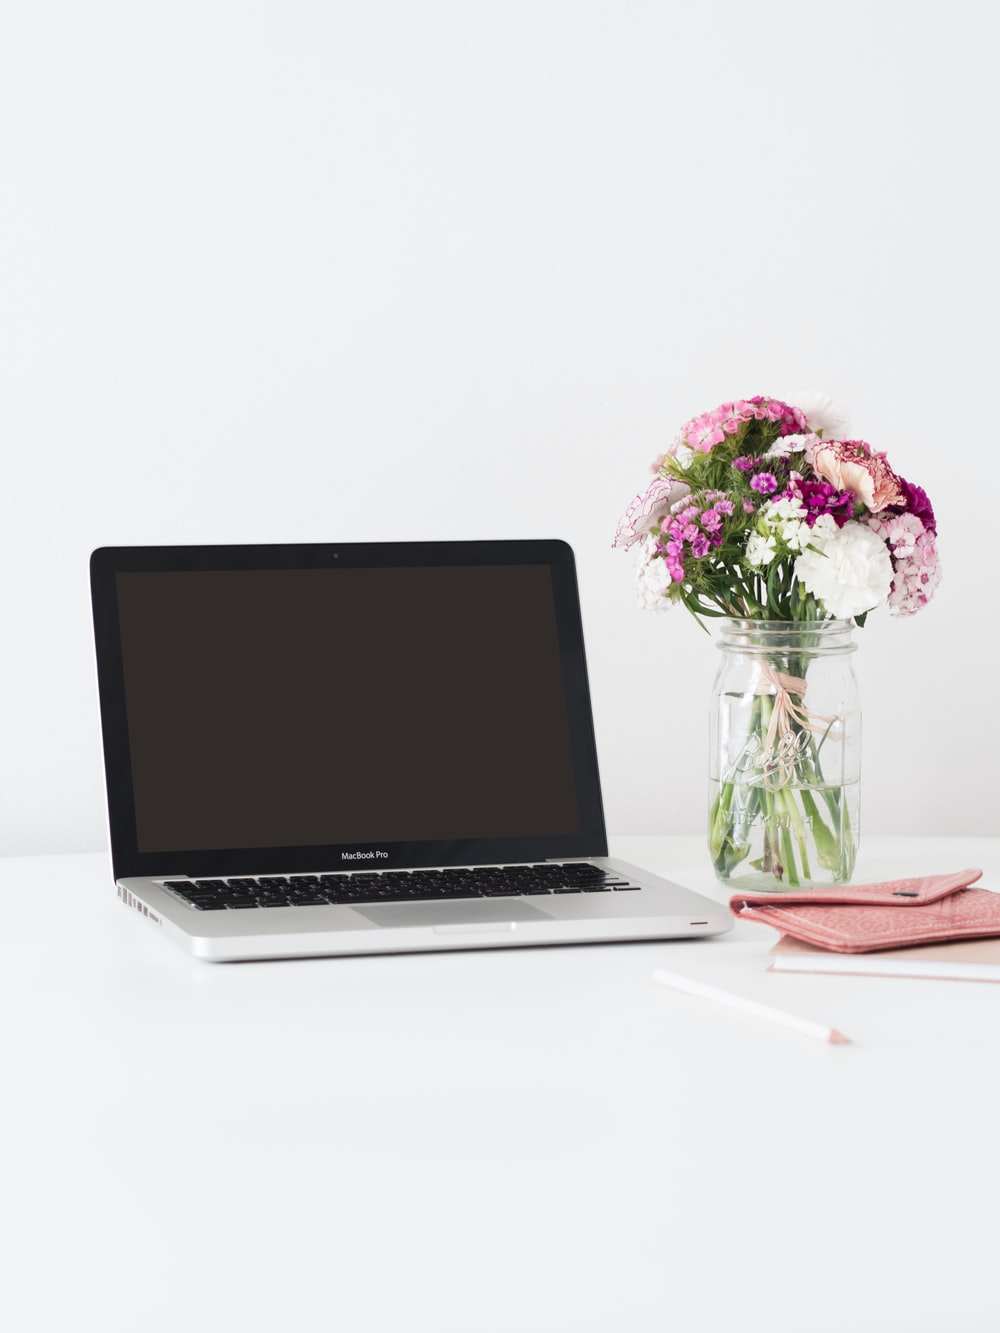 macbook pro beside pink and white flowers in clear glass vase